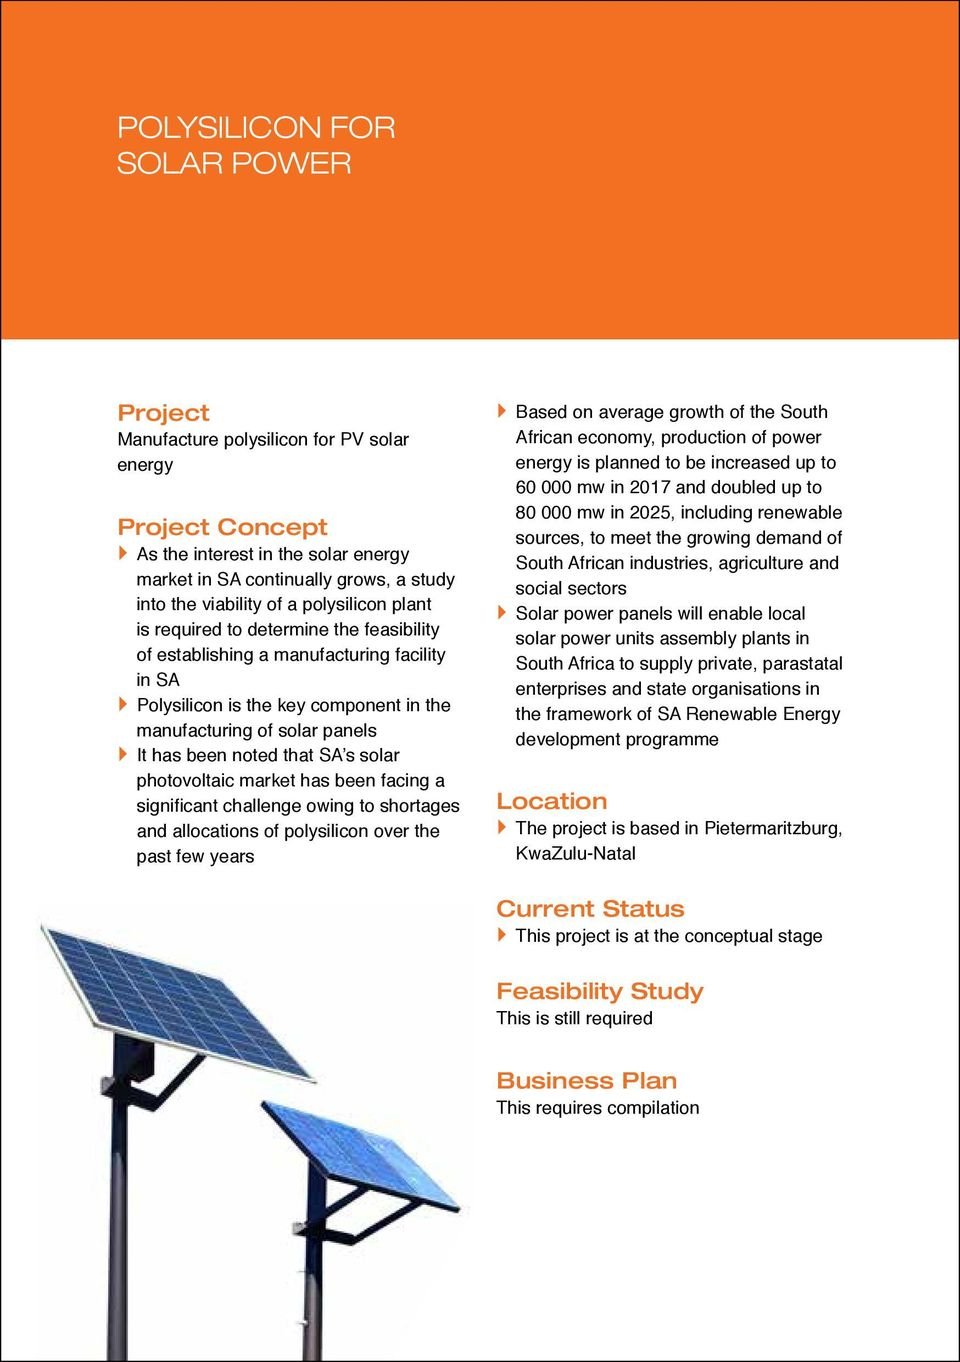 SA s solar photovoltaic market has been facing a significant challenge owing to shortages and allocations of polysilicon over the past few years Based on average growth of the South African economy,